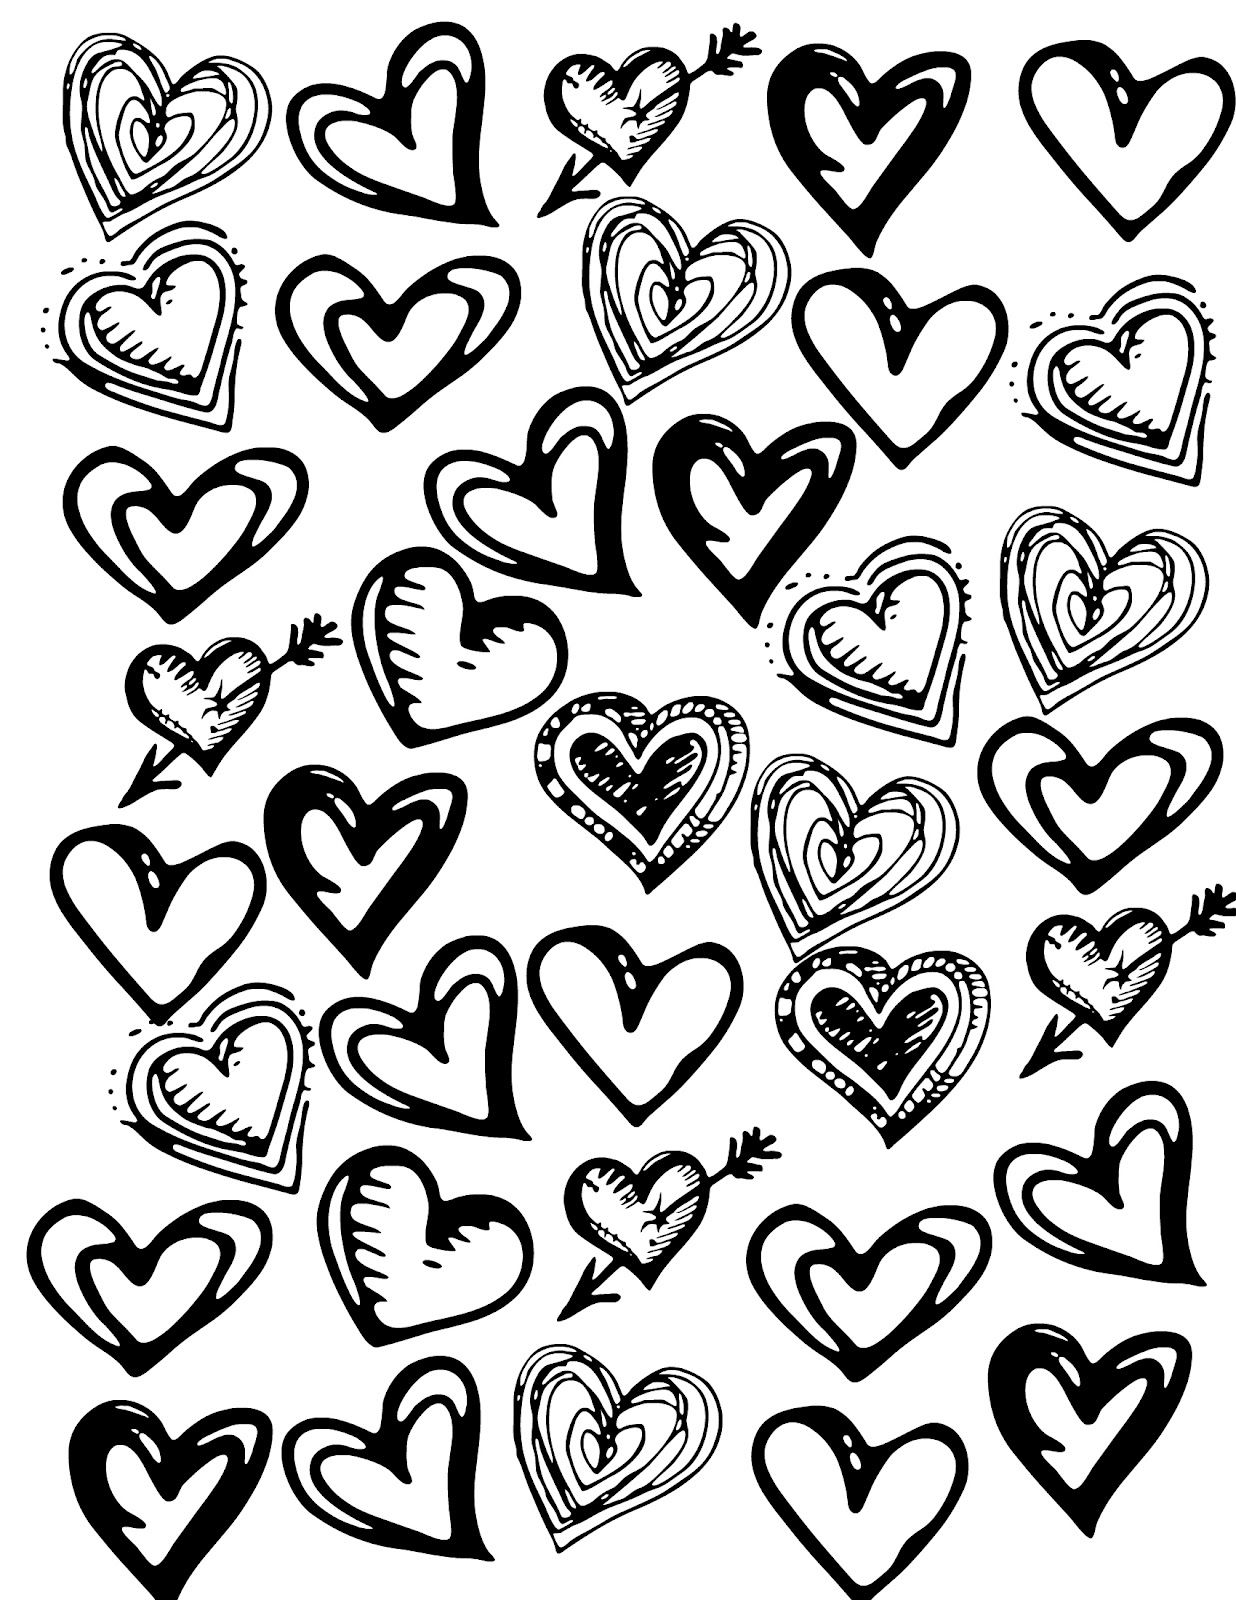 Coloring Valentine Hearts Decorate Mailboxes Valentine Heart Black White Art Black And White Baby